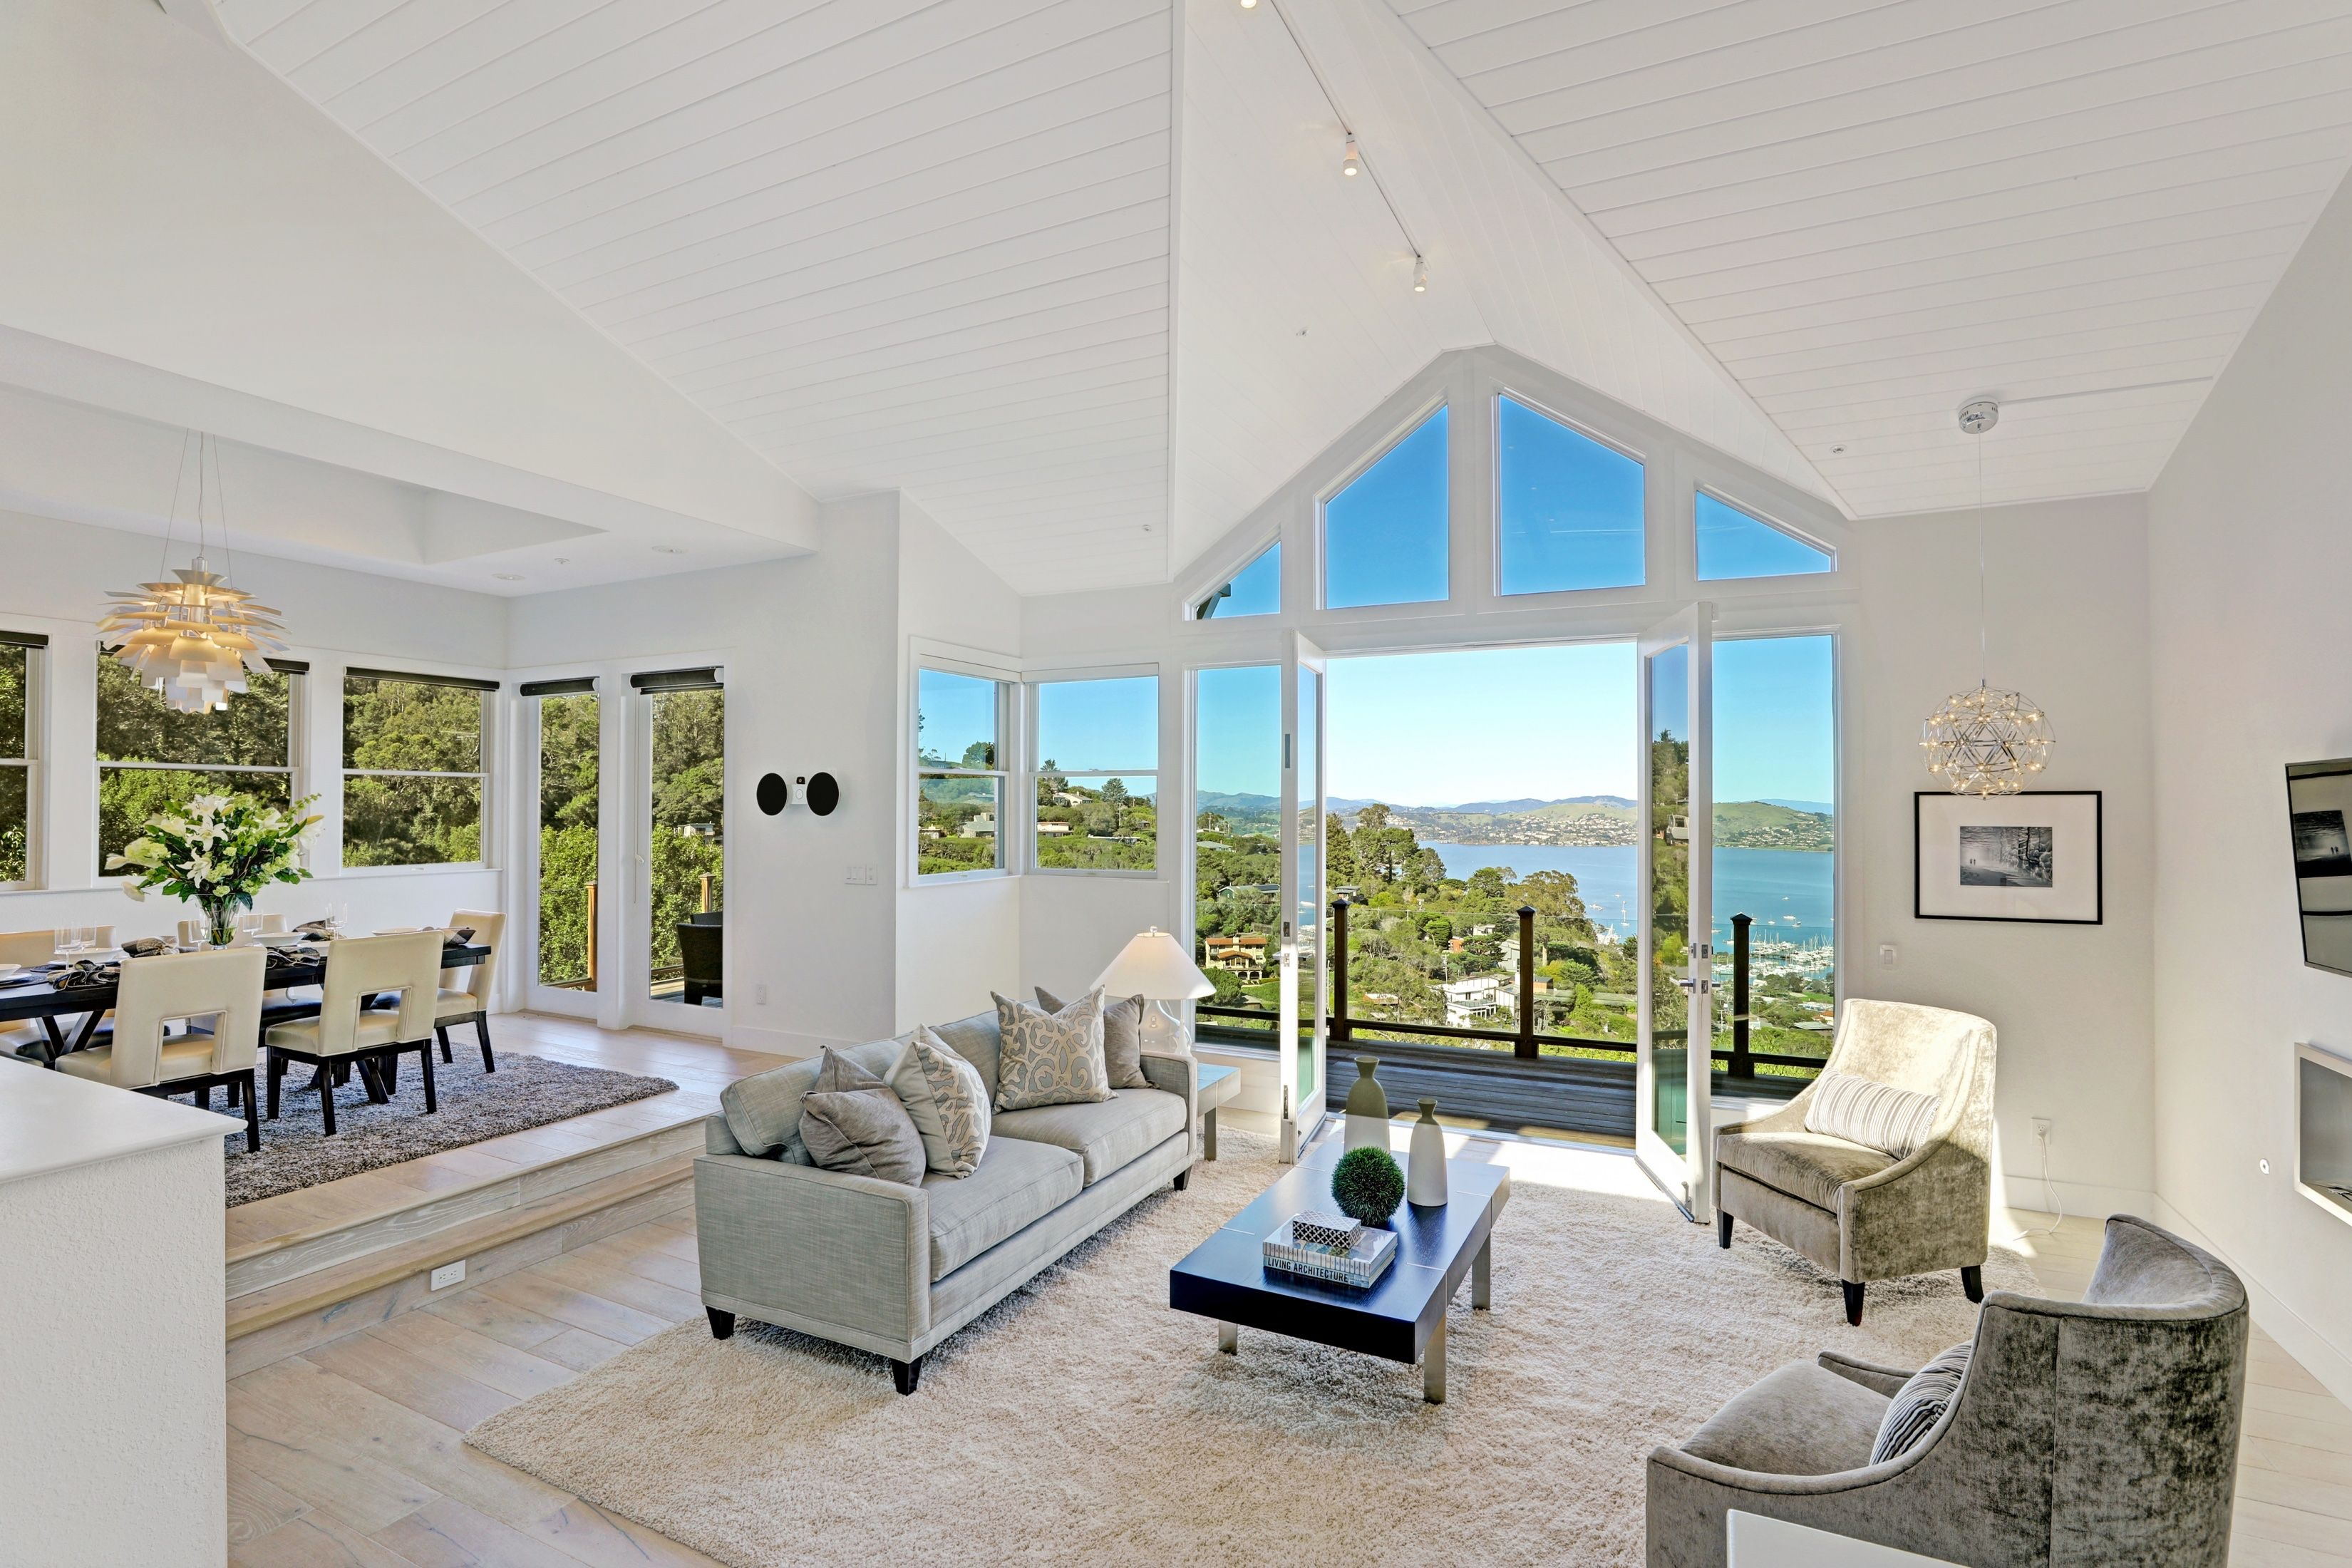 What's not to love about this Sausalito residence with its high ceilings, open floor plan, and timeless finishes? Oh, and there are outstanding water and marina views throughout. Sigh!  http://pacunion.us/244spencer